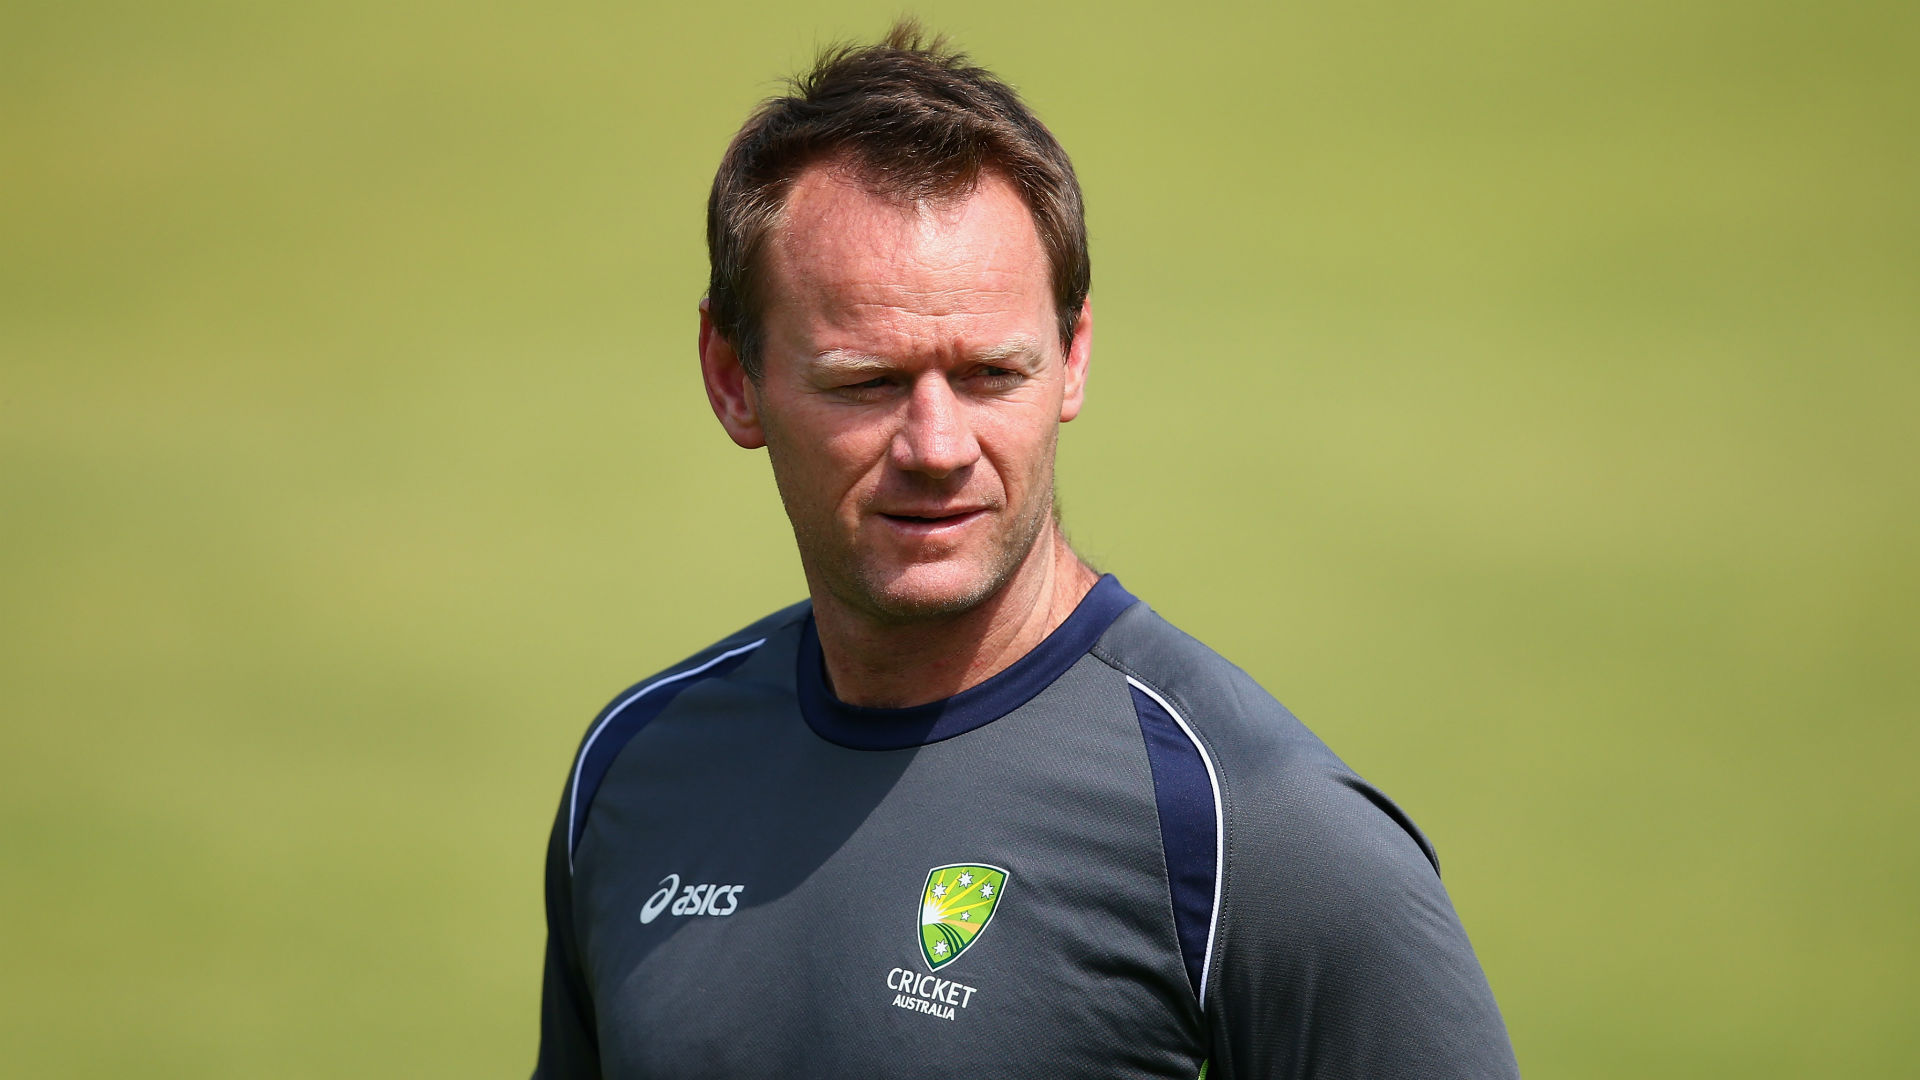 Pat Howard is leaving his role as Cricket Australia's high performance manager, with Belinda Clark taking the job on an interim basis.